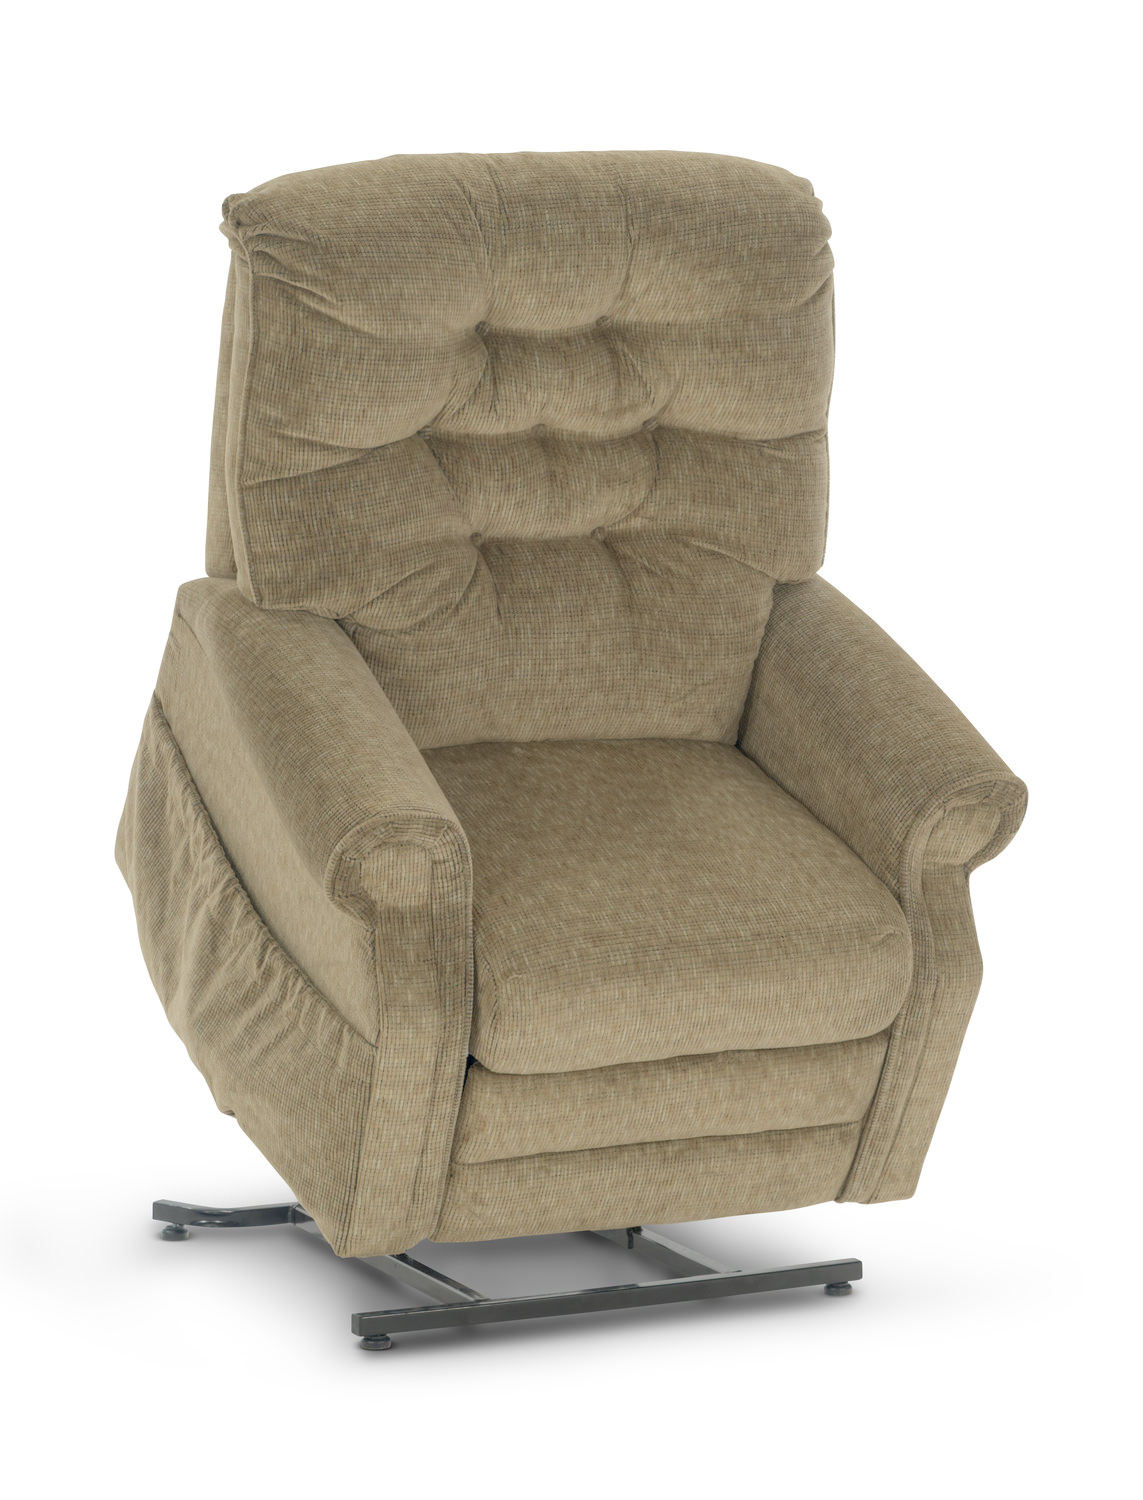 Patriot Power Lift Chair Recliner ...  sc 1 st  HOM Furniture & Patriot Power Lift Chair Recliner | HOM Furniture islam-shia.org